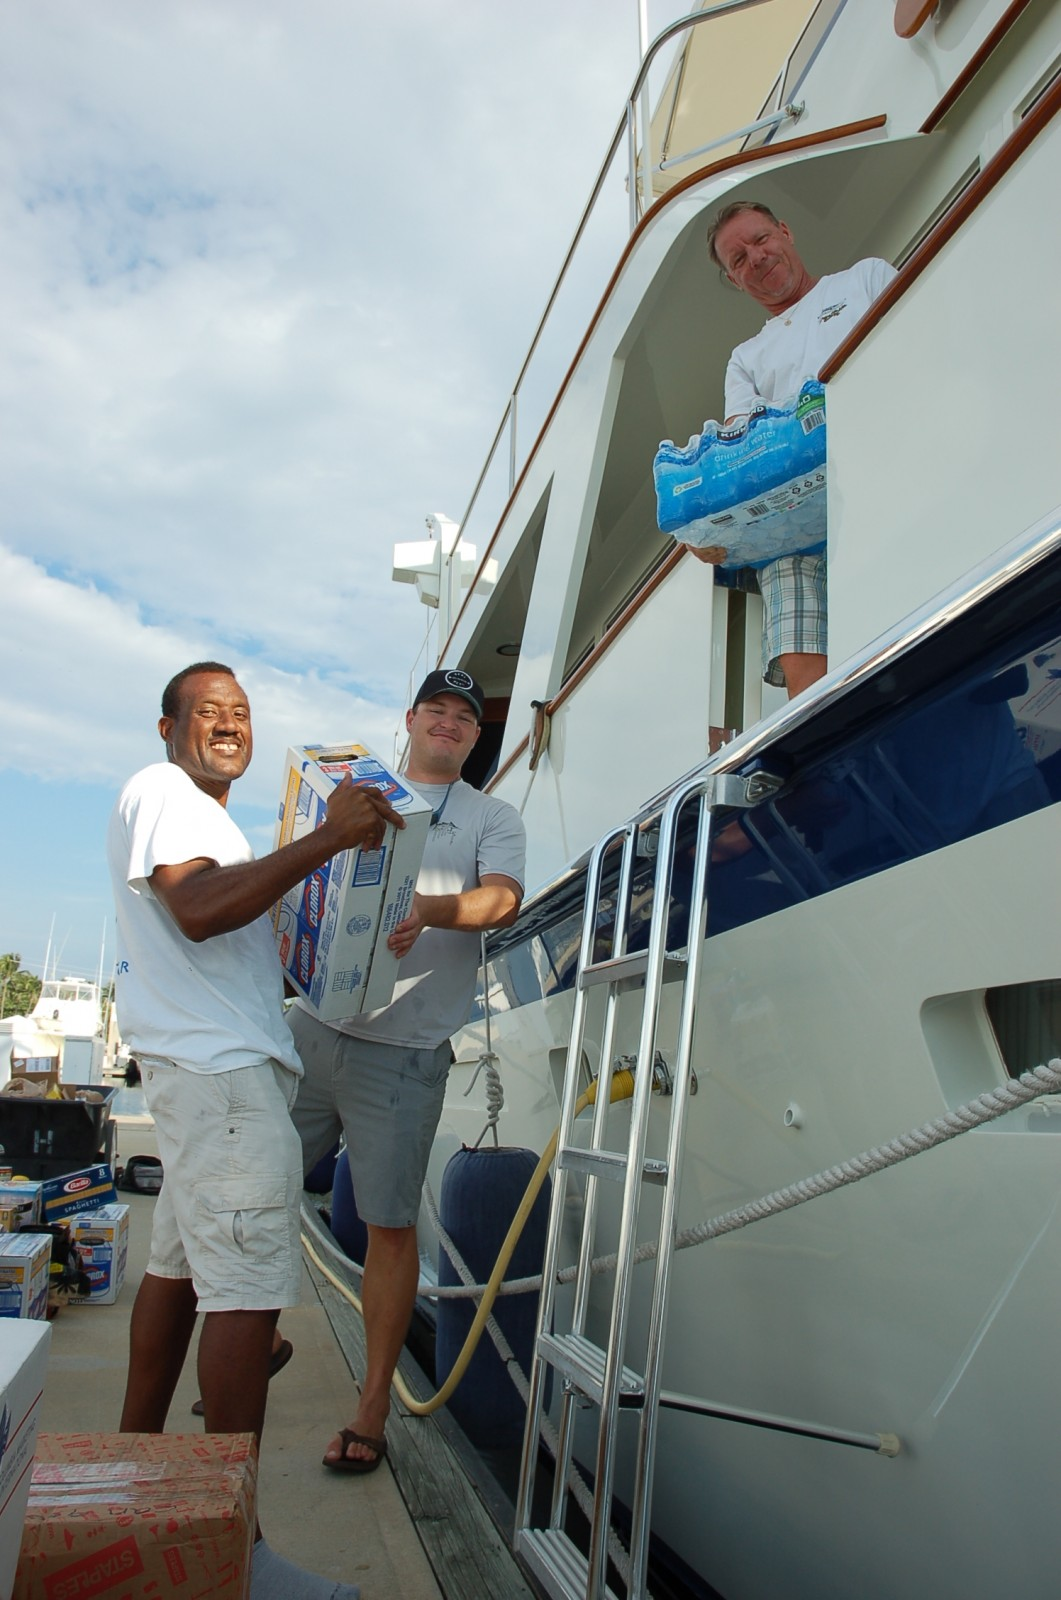 Wenzel Rolle, Jeremy Beller and Capt. Garry Schenck load donated supplies for Hurricane Joaquin relief effort in the Bahamas. (Oct. 9 at Bahia Mar Marina Ft. Lauderdale). PHOTO/DORIE COX